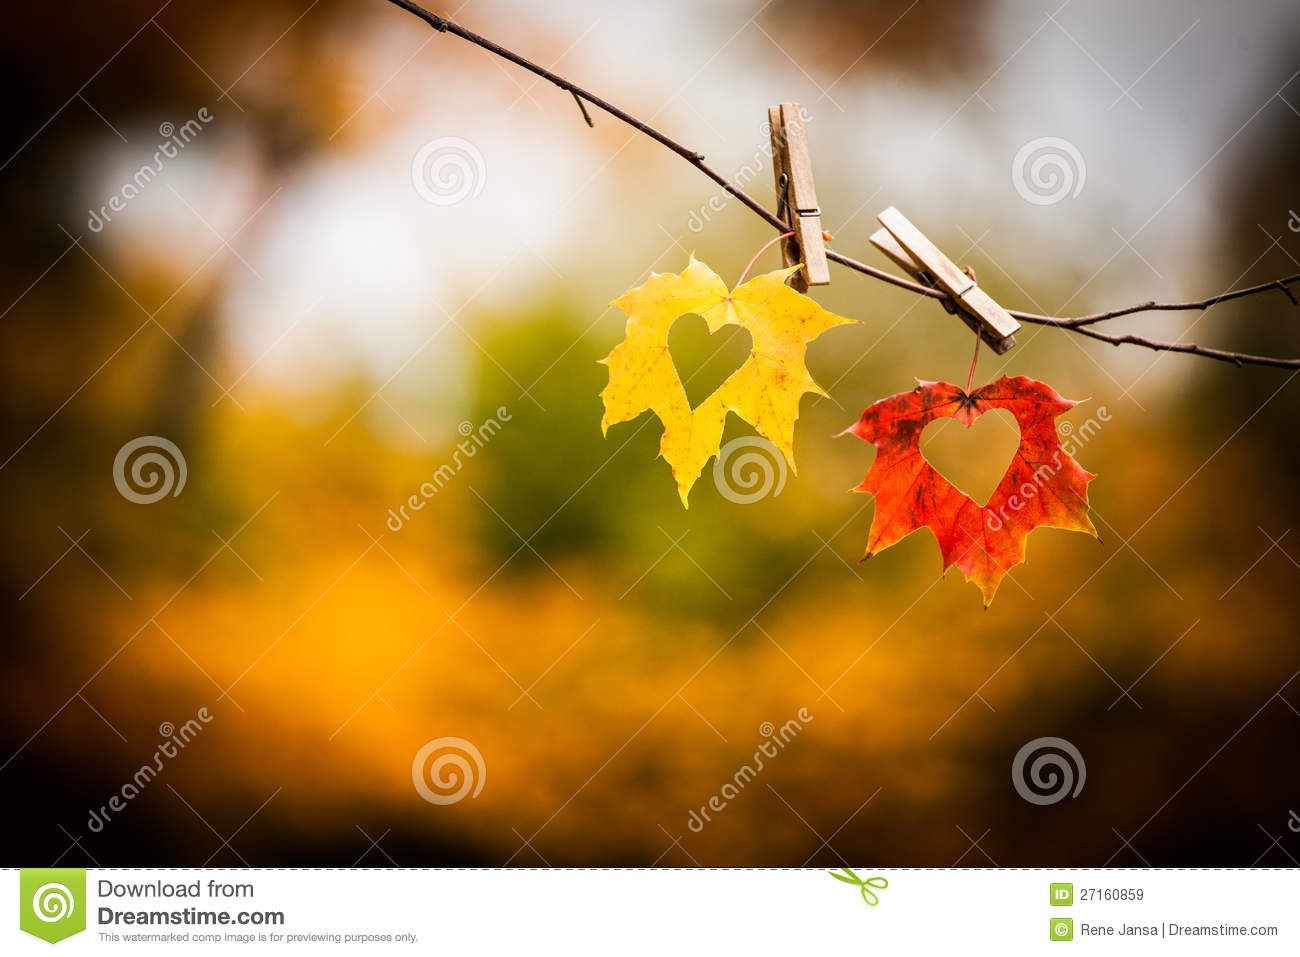 Free Desktop Wallpaper Fall Foliage Autumn Leaves With Hearts Royalty Free Stock Images